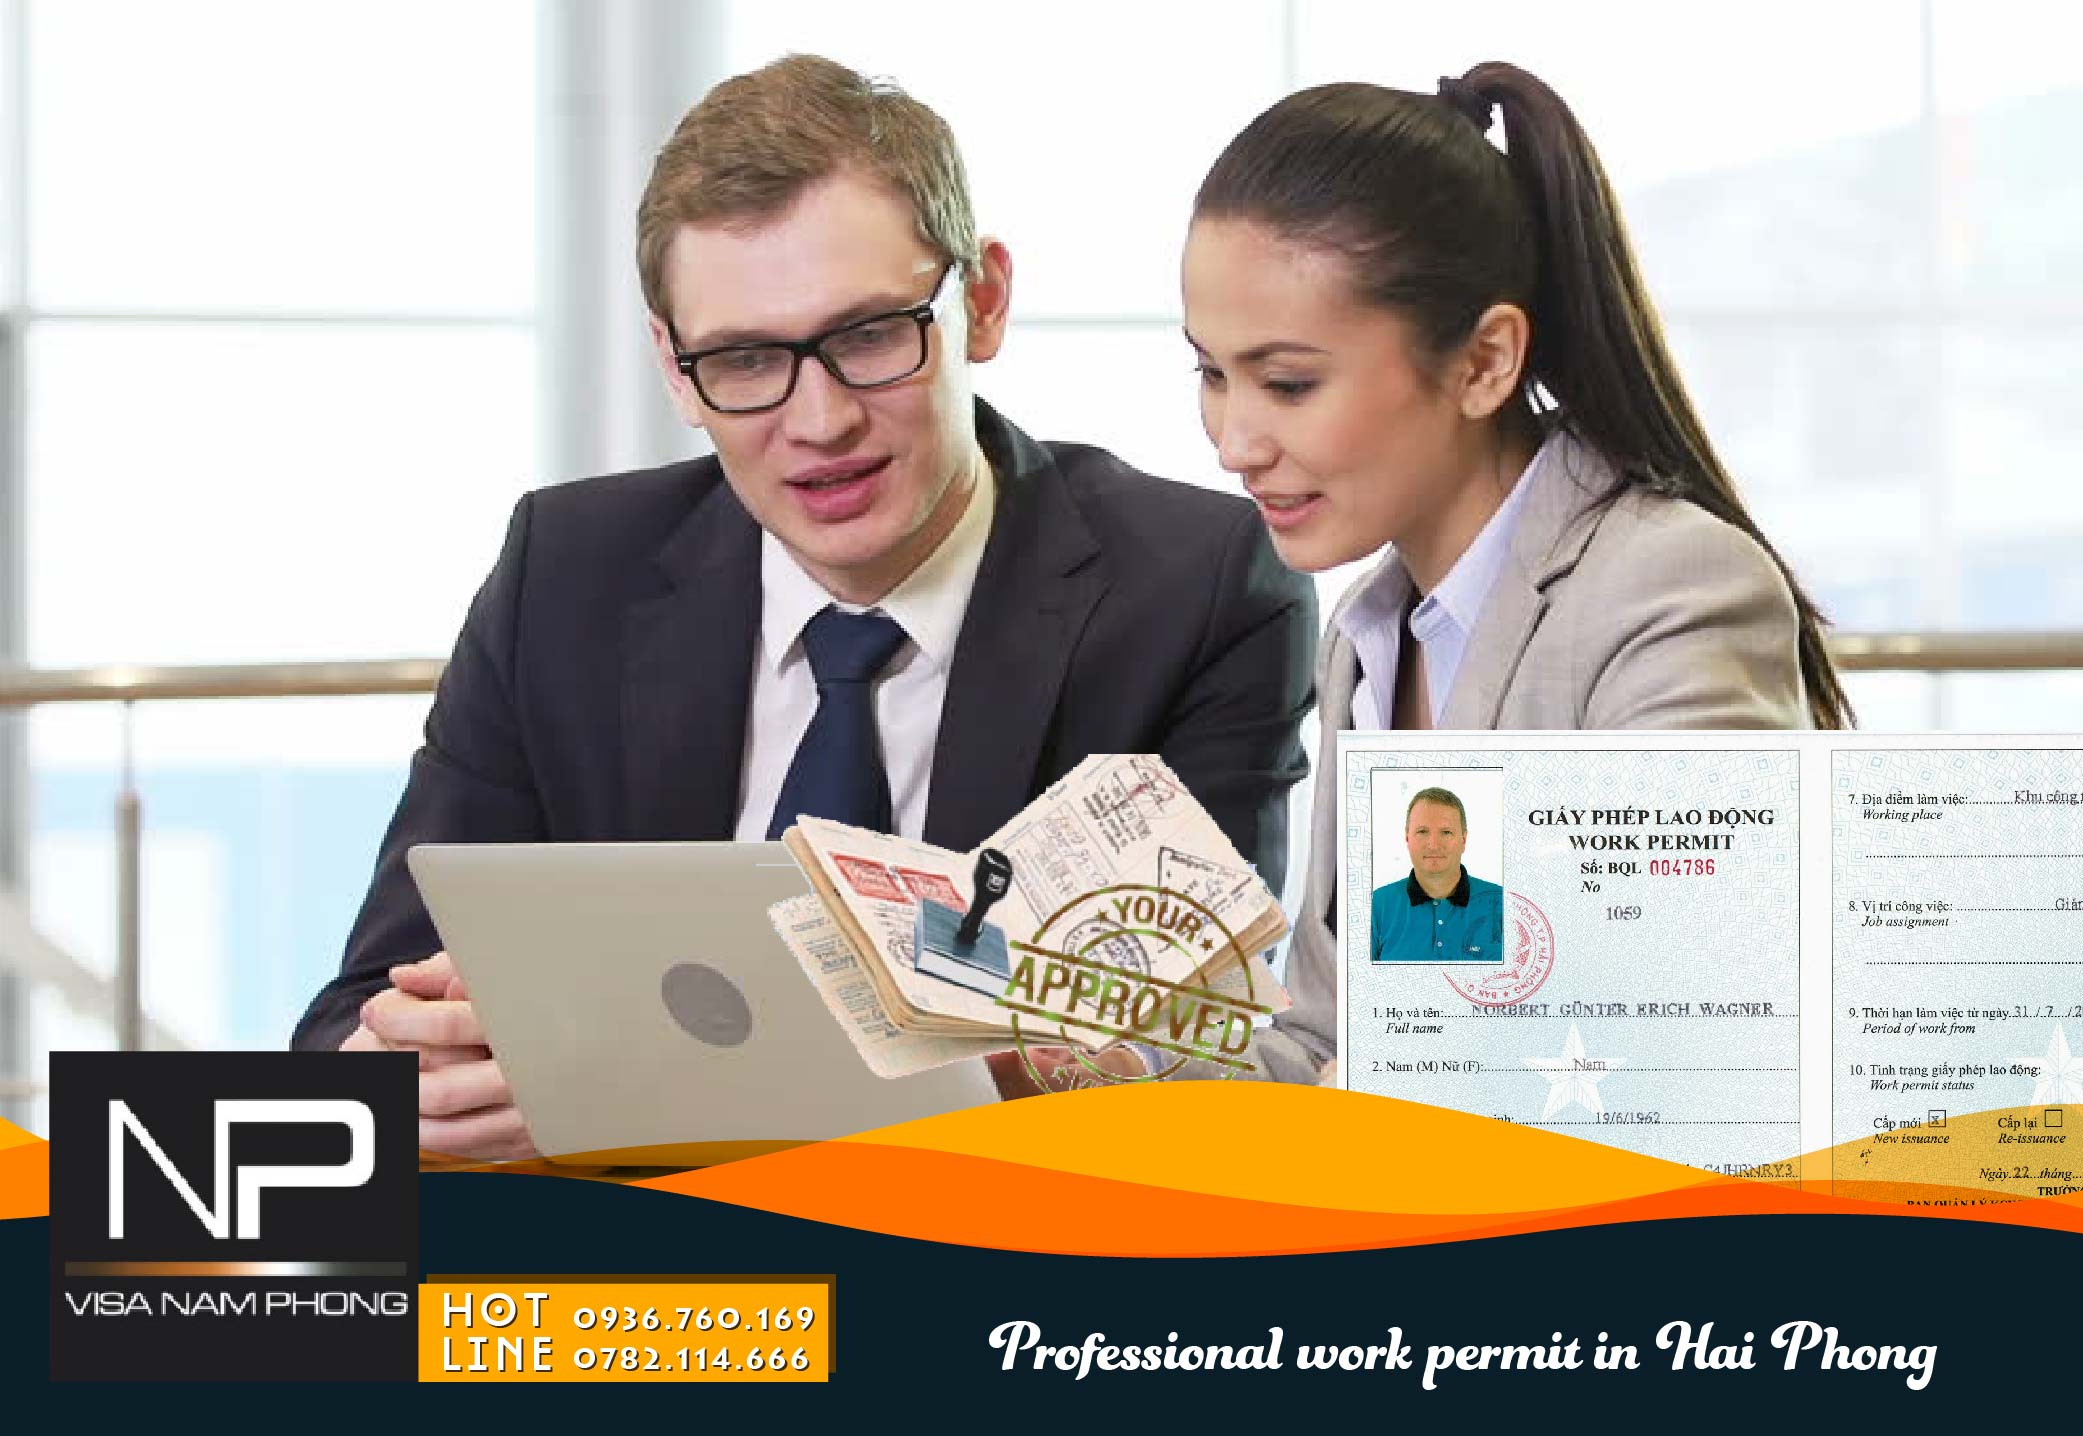 Professional work permit in Hai Phong